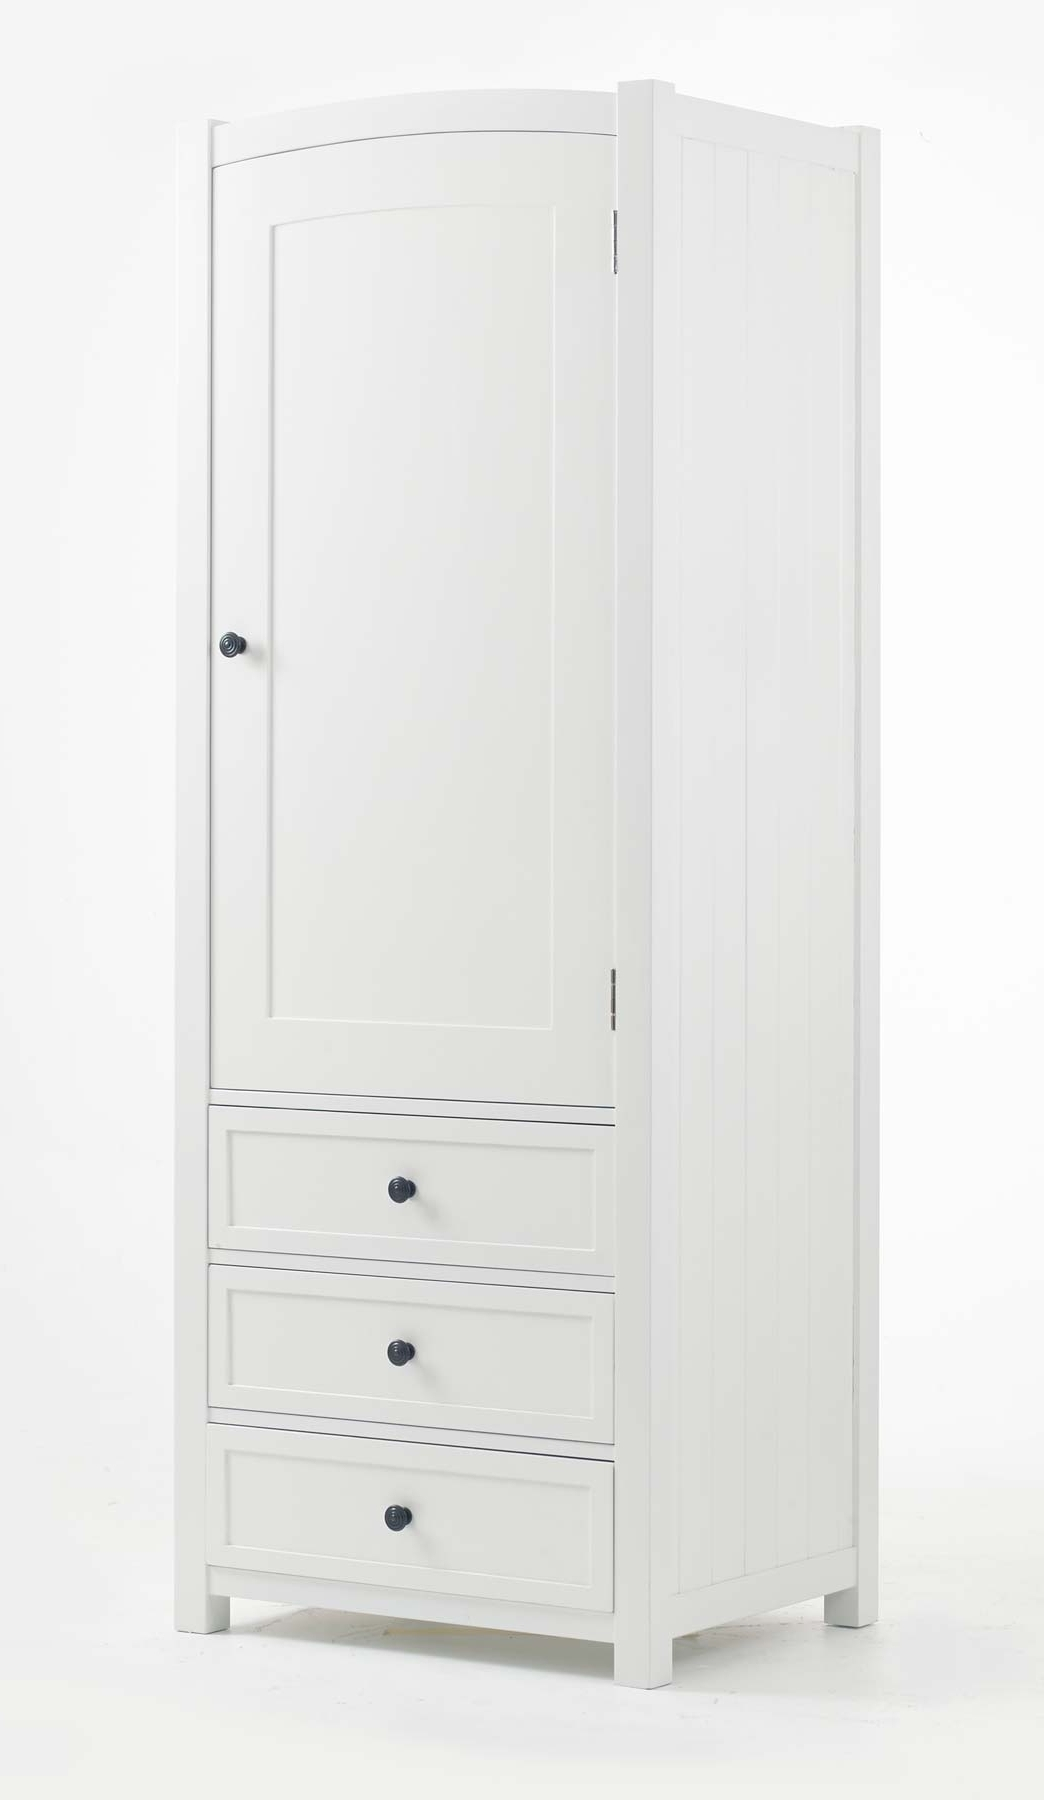 Single Wardrobes With Regard To Most Recently Released Tall Single Wardrobe With Drawers • Drawer Ideas (View 9 of 15)